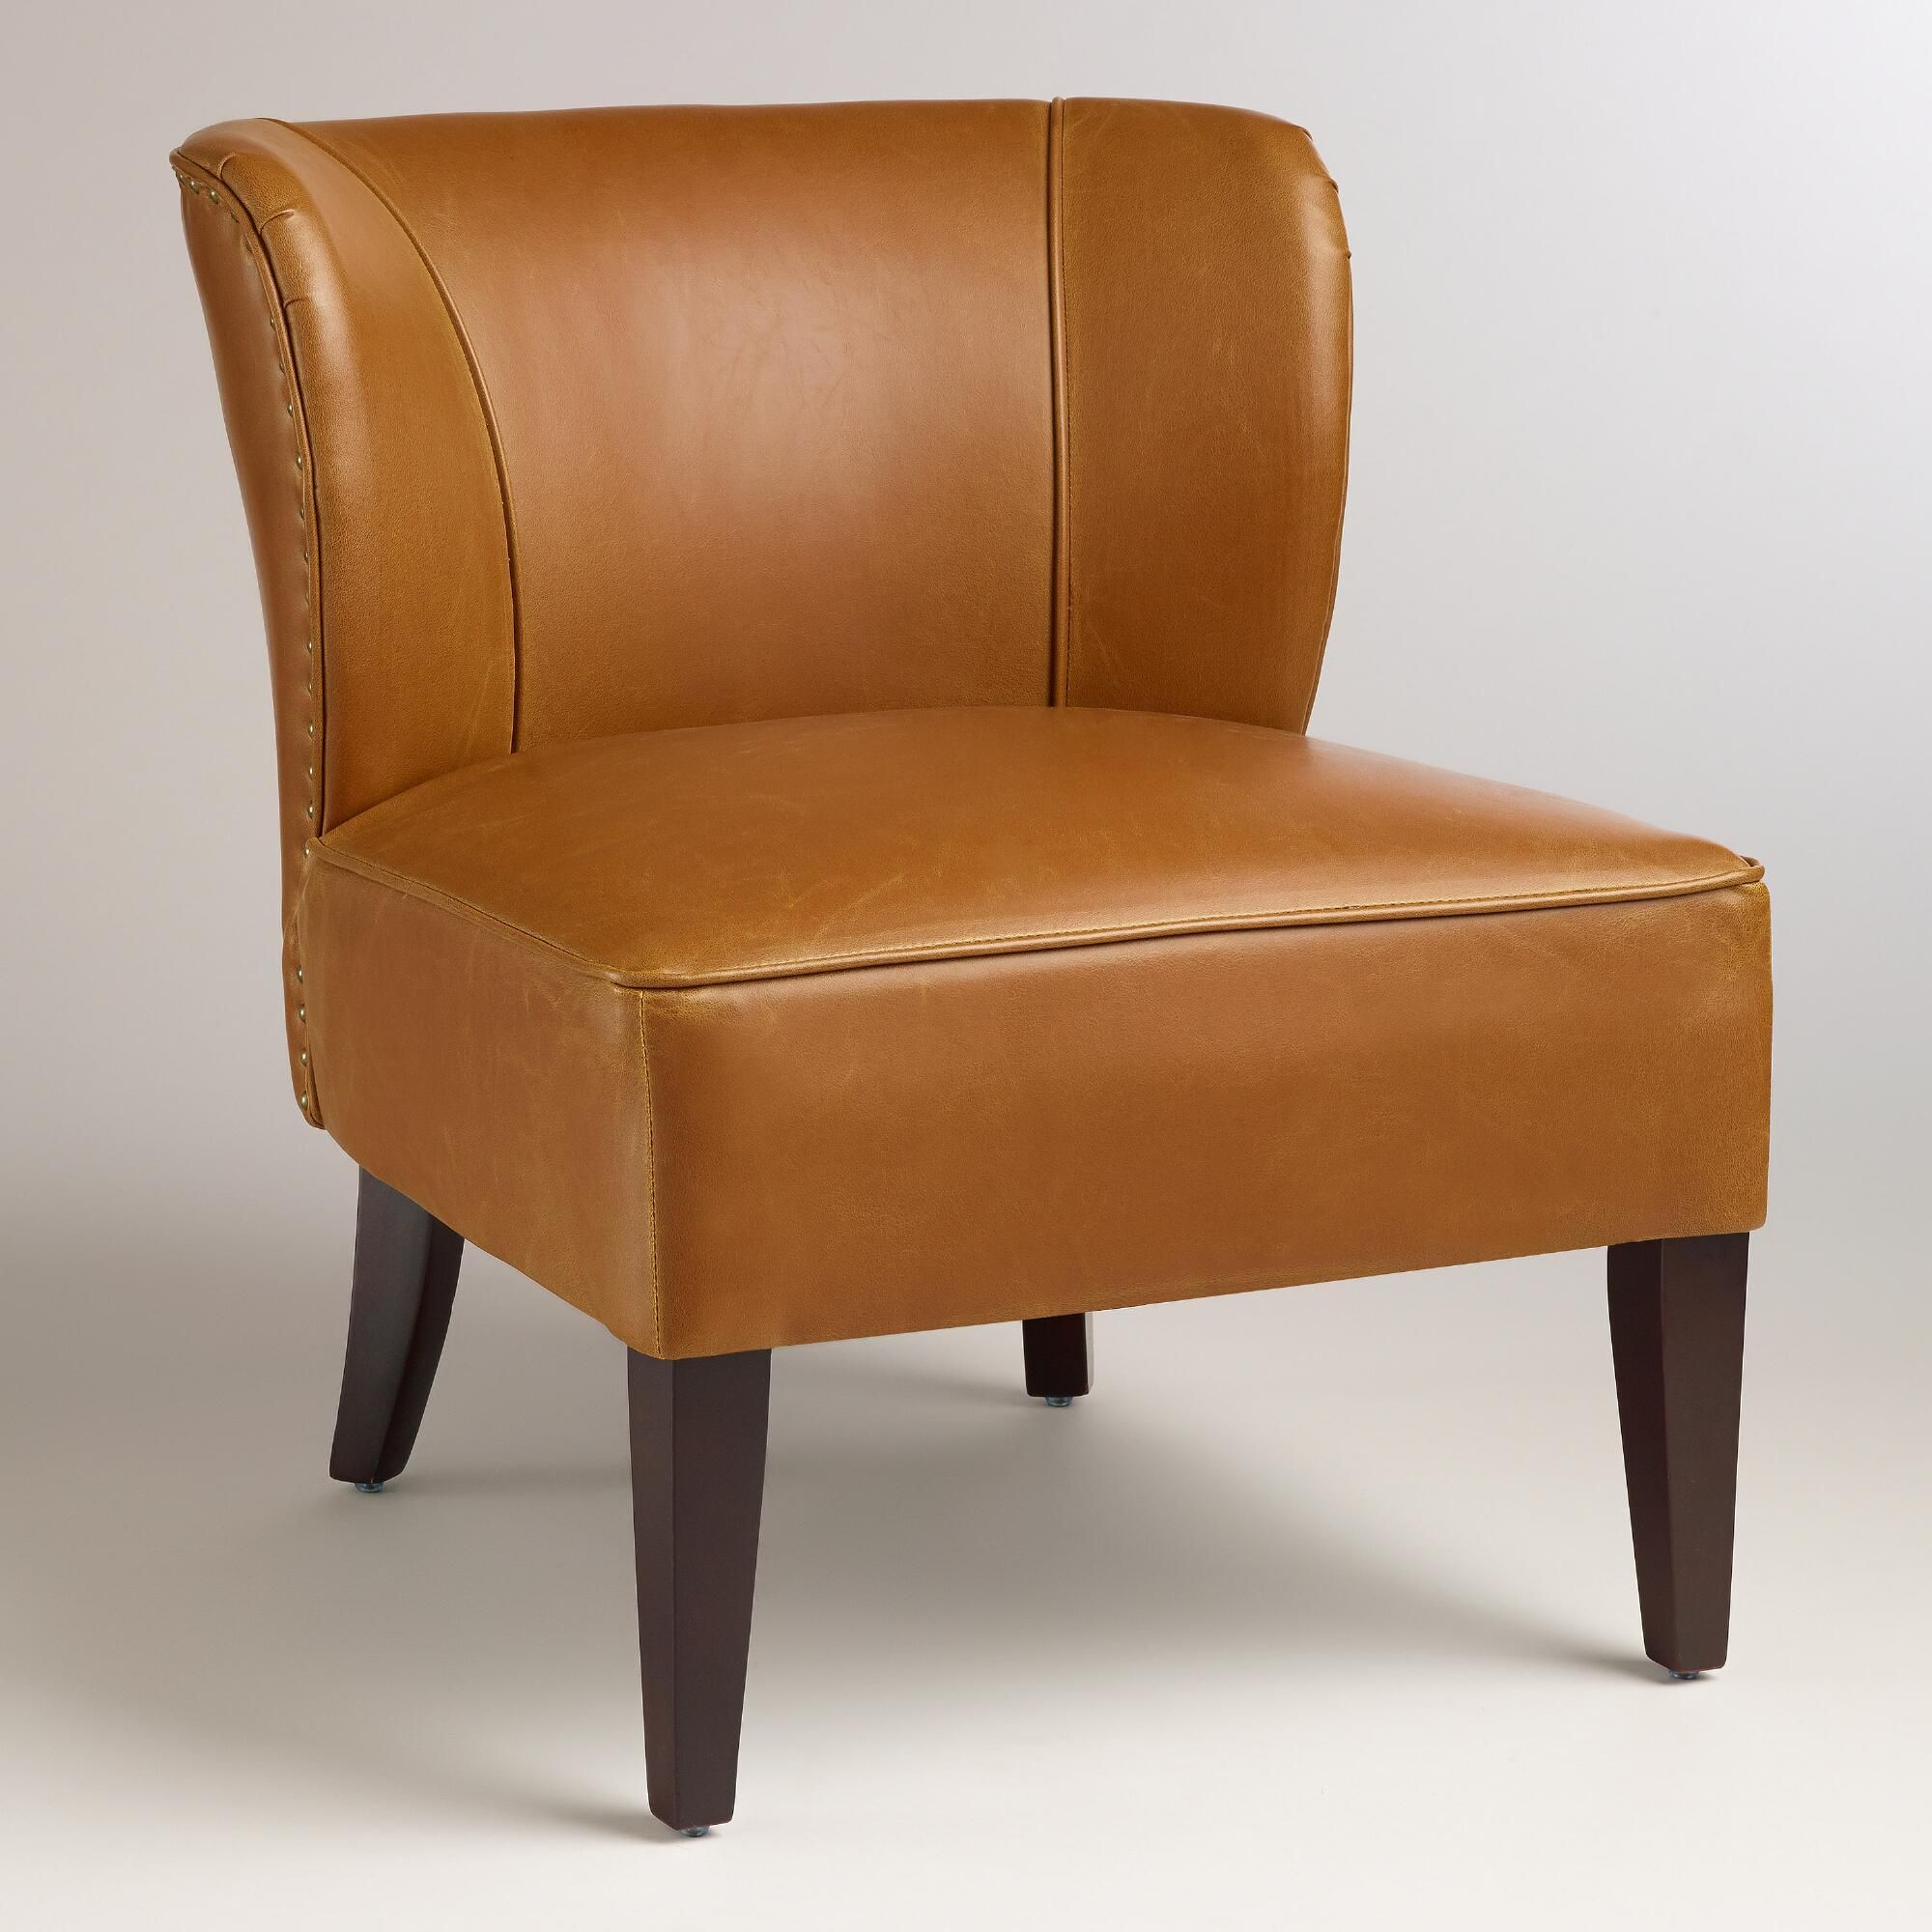 Attrayant Caramel Quincy Leather Chair | World Market